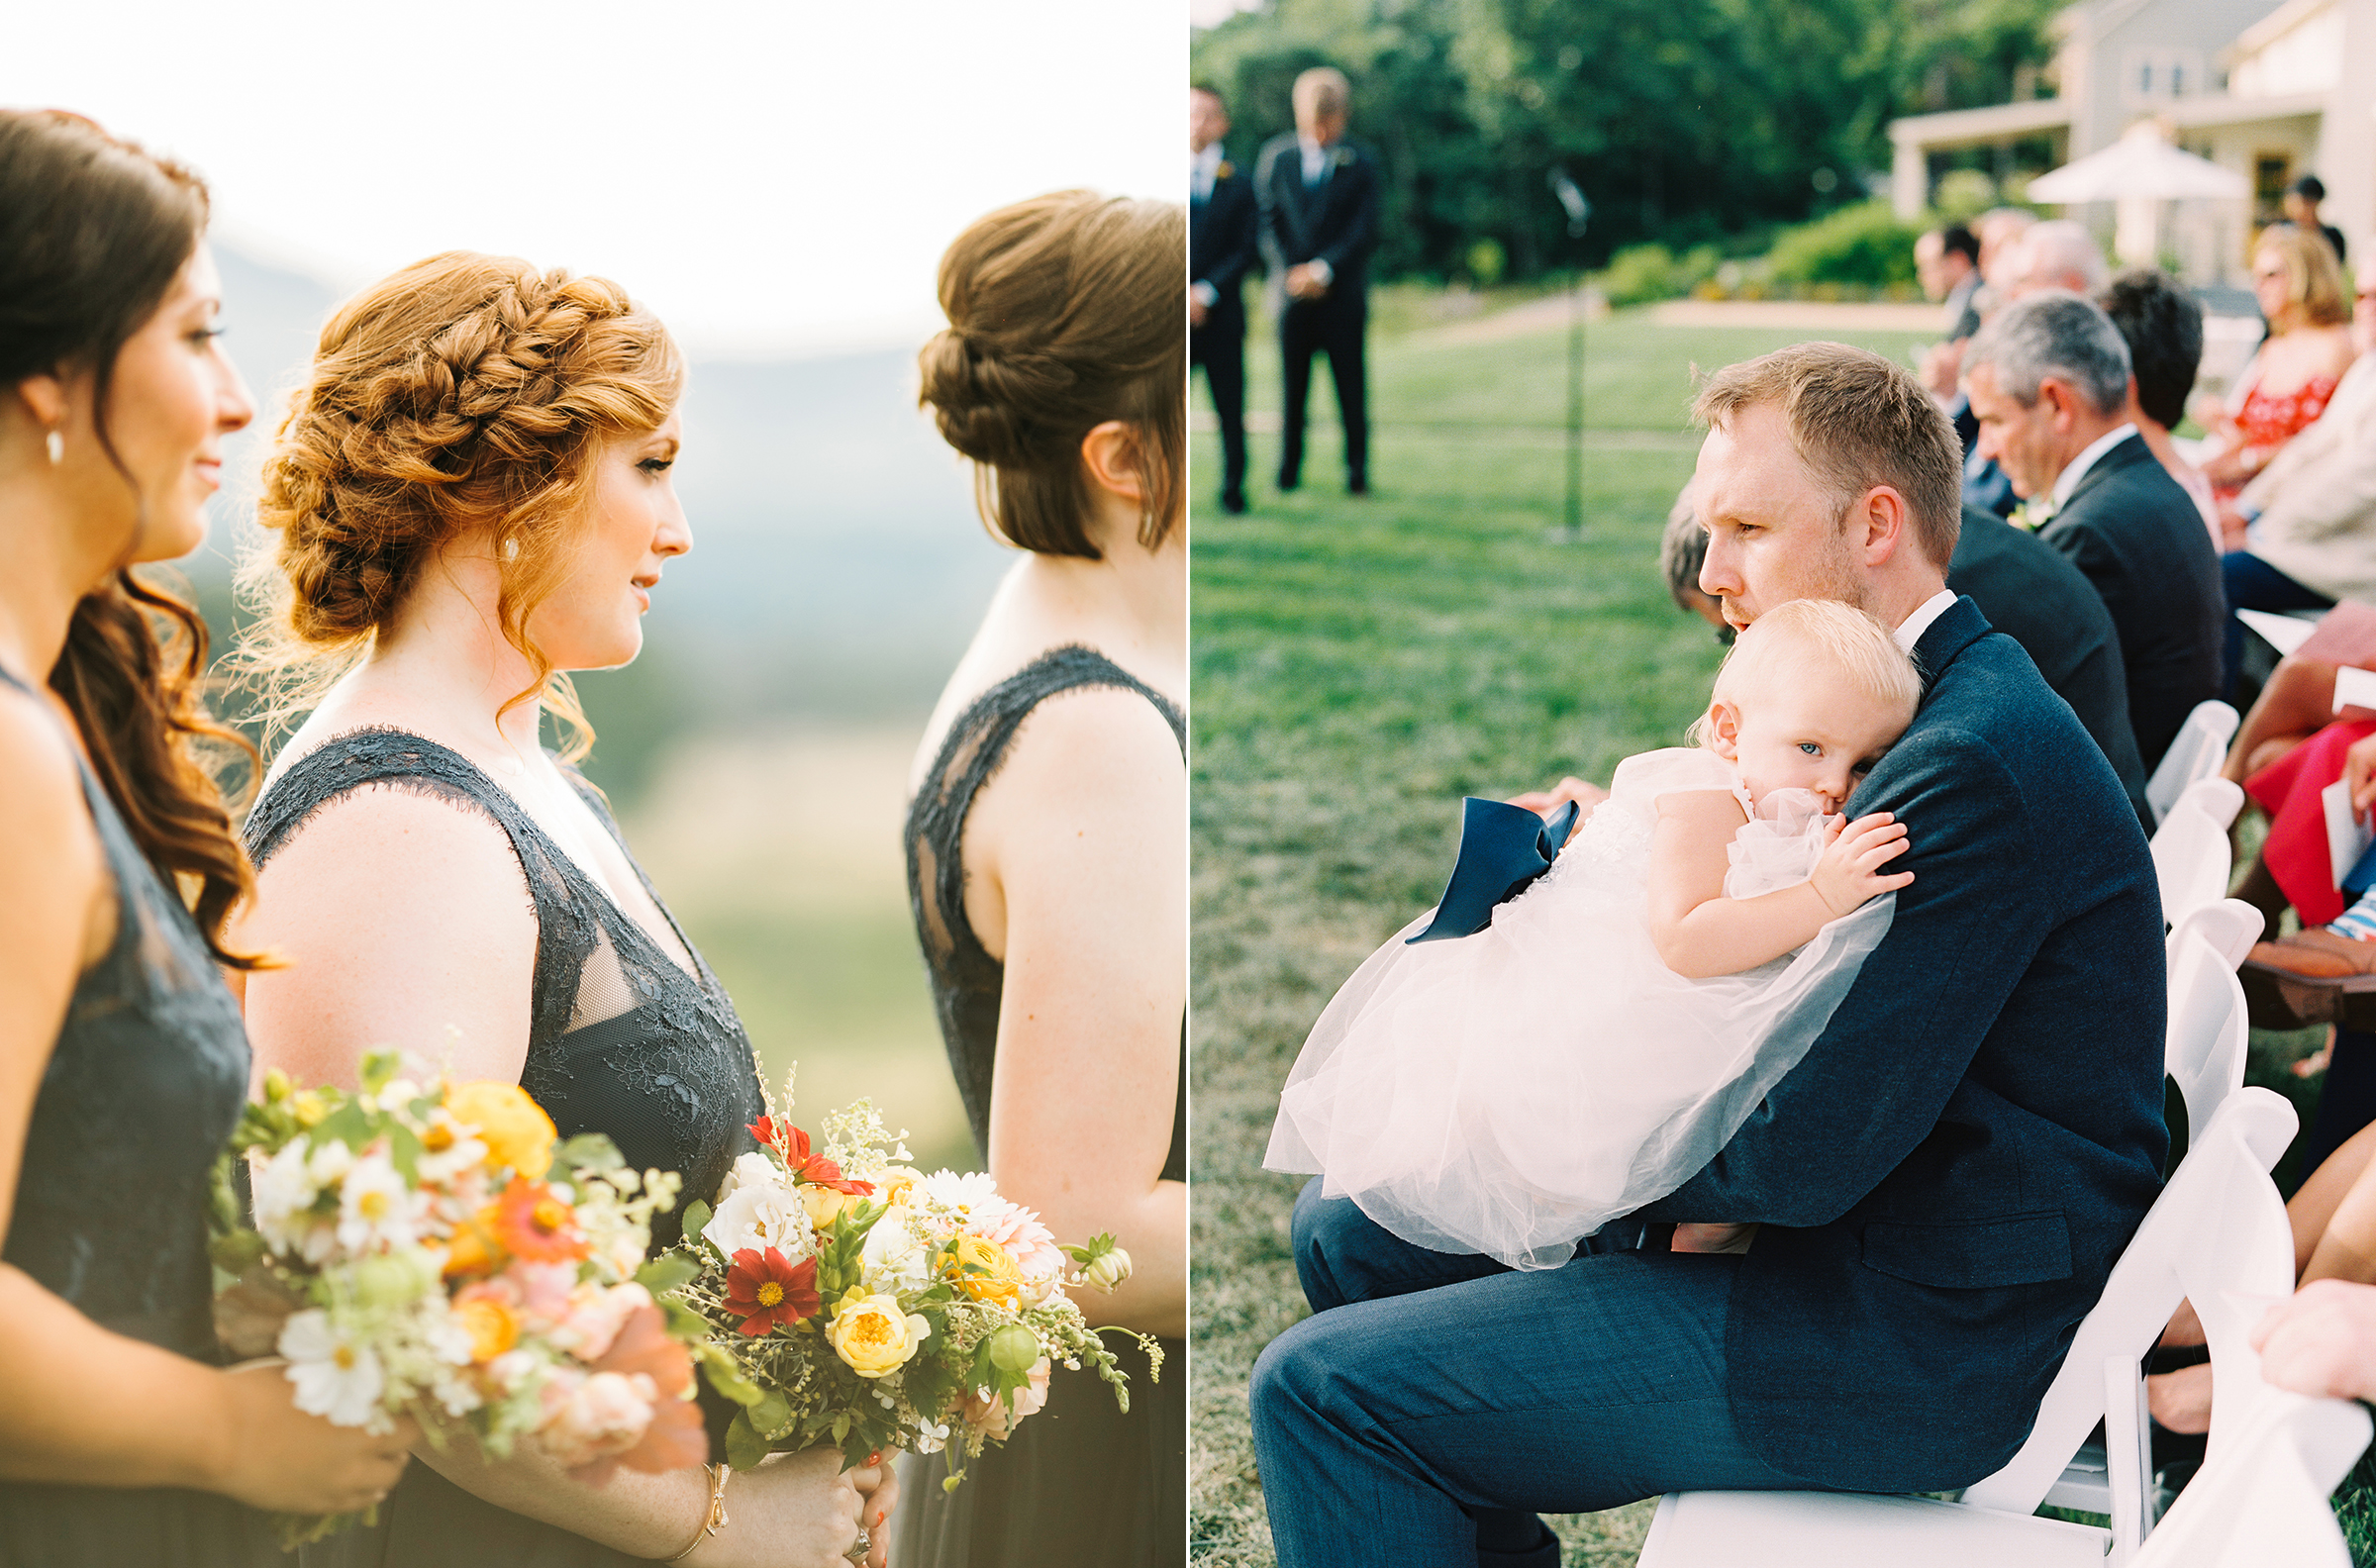 katie stoops photography-pippin hill-ashley baber weddings25.jpg